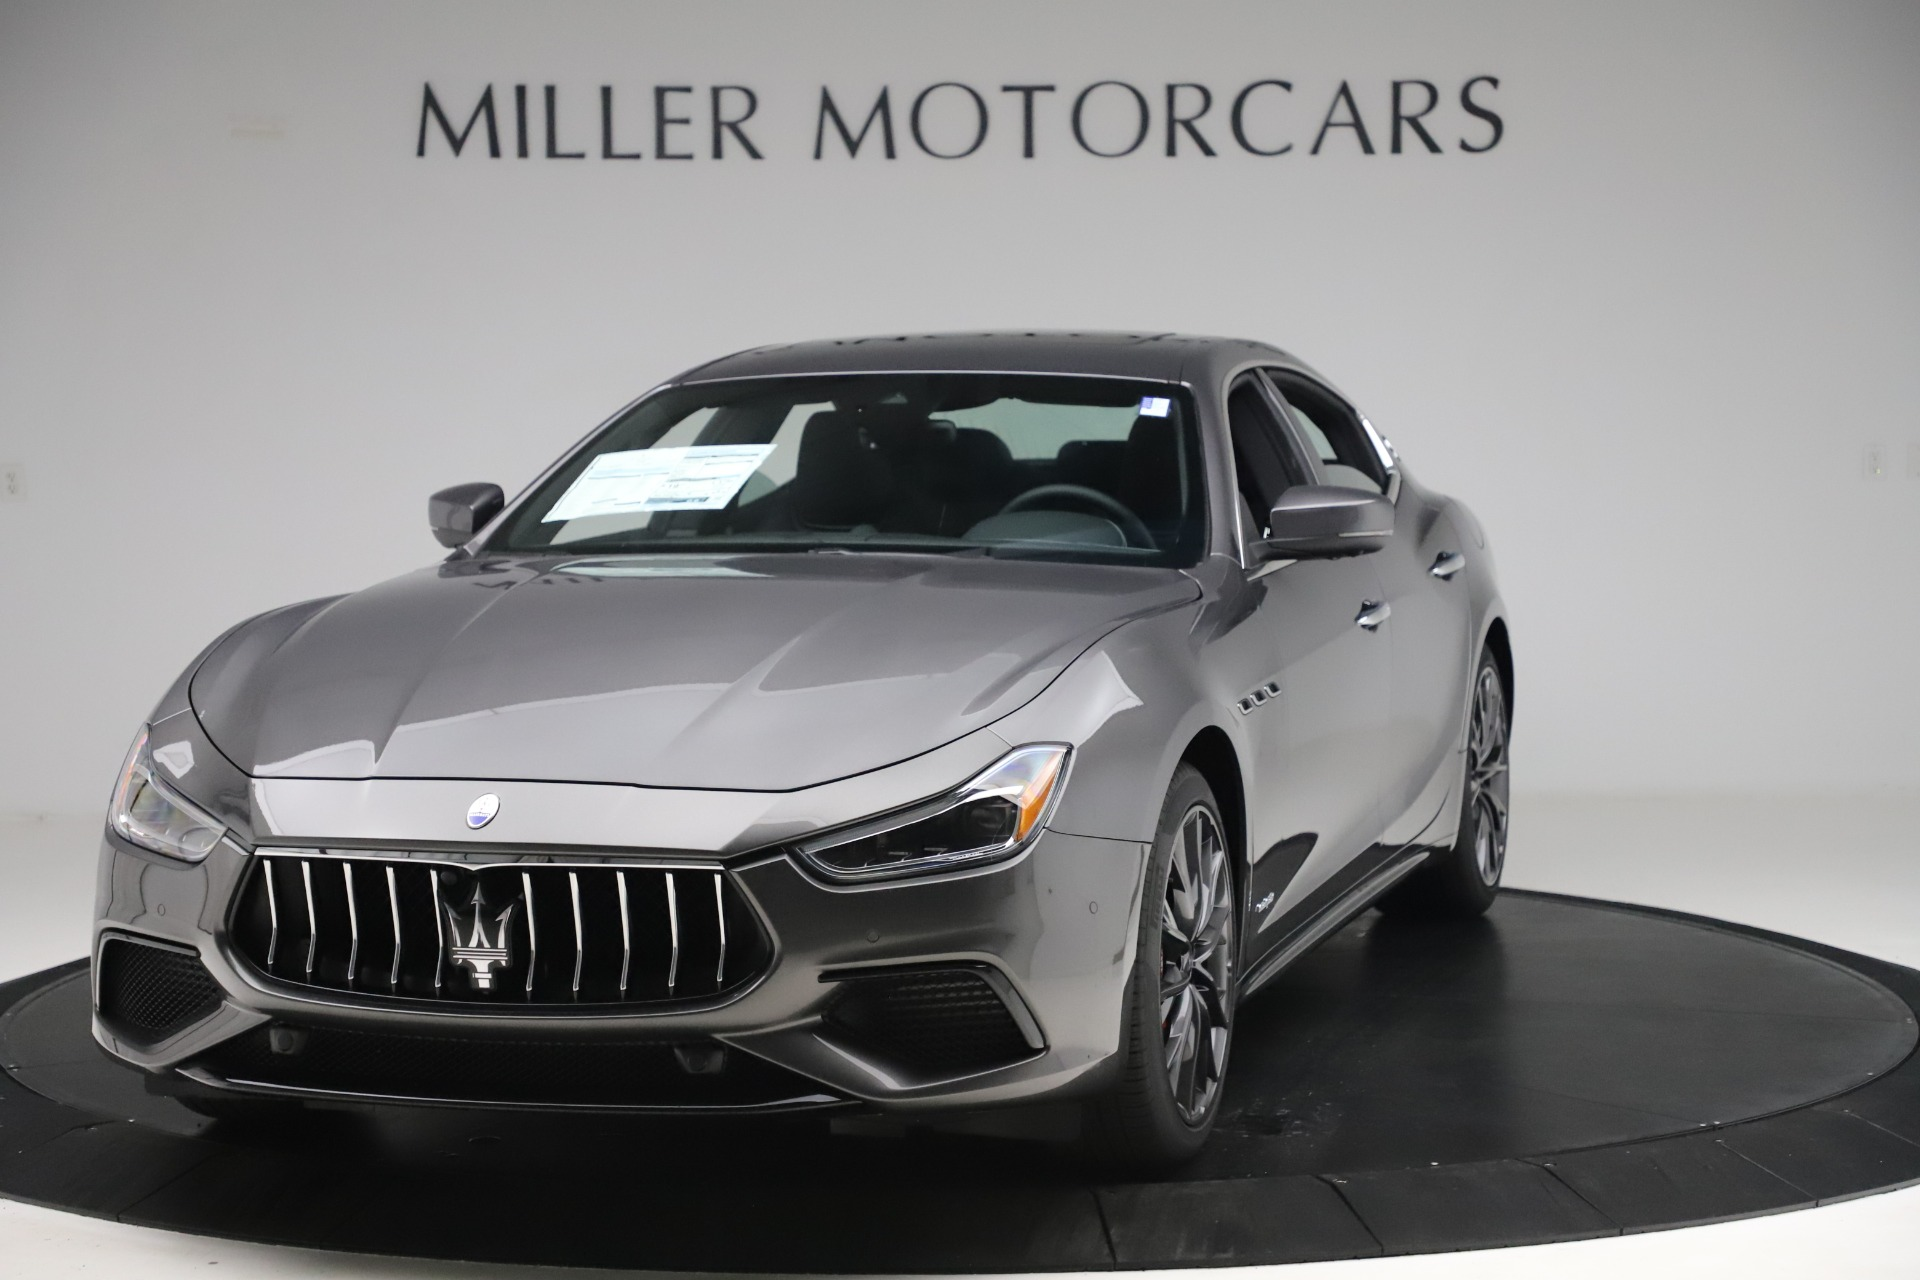 New 2019 Maserati Ghibli S Q4 GranSport for sale $100,695 at Maserati of Westport in Westport CT 06880 1